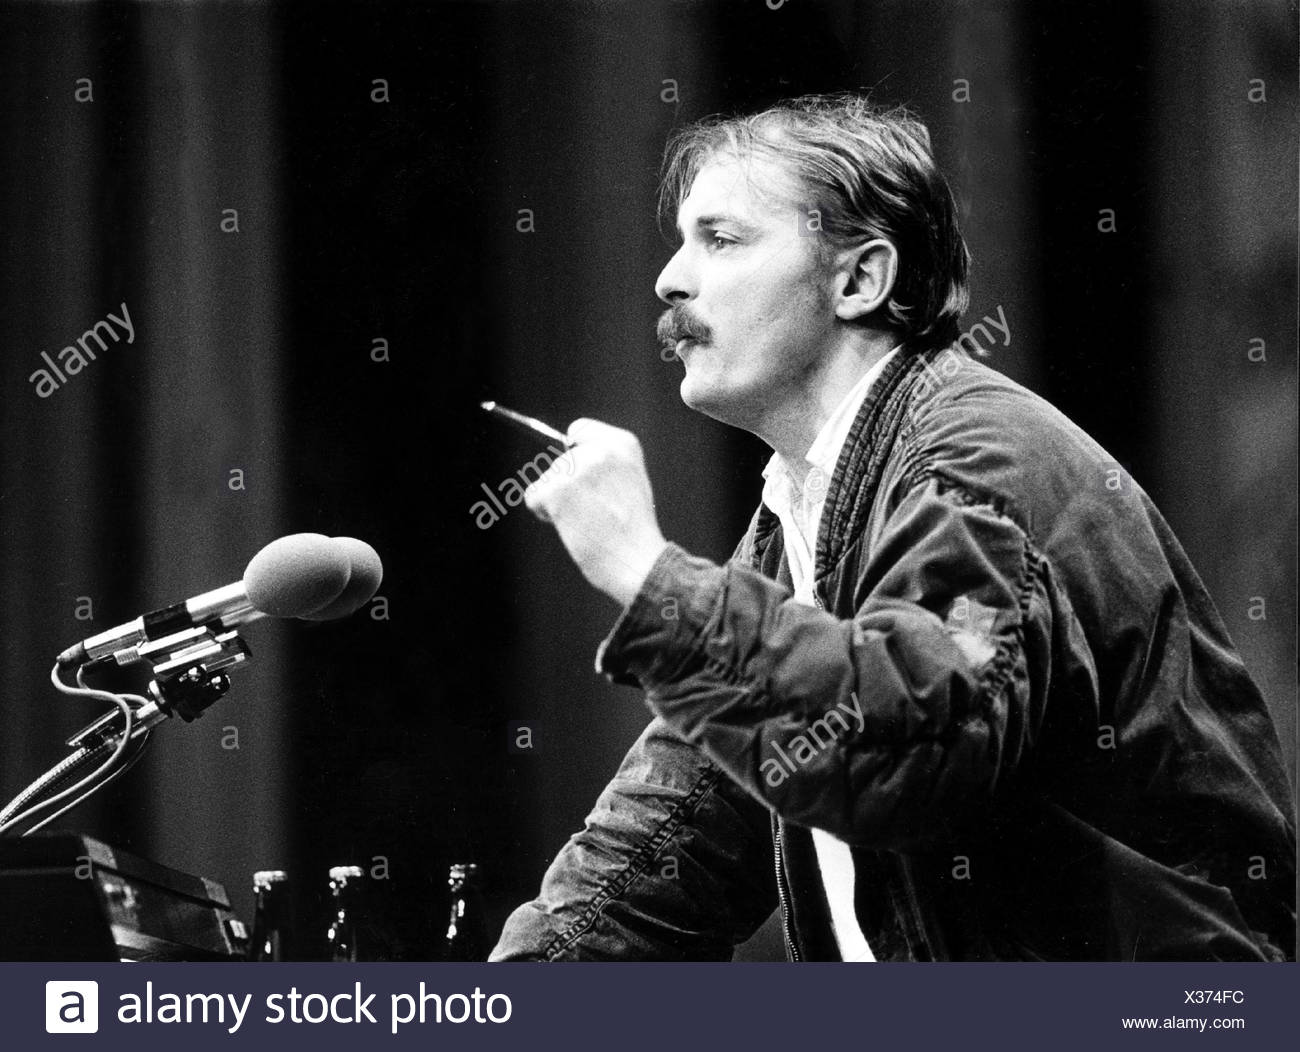 Hubert,  Kleinert, German politician, half length, federal party conference of The Greens, Hamburg, 7.- 9.12.1984, Additional-Rights-Clearances-NA - Stock Image